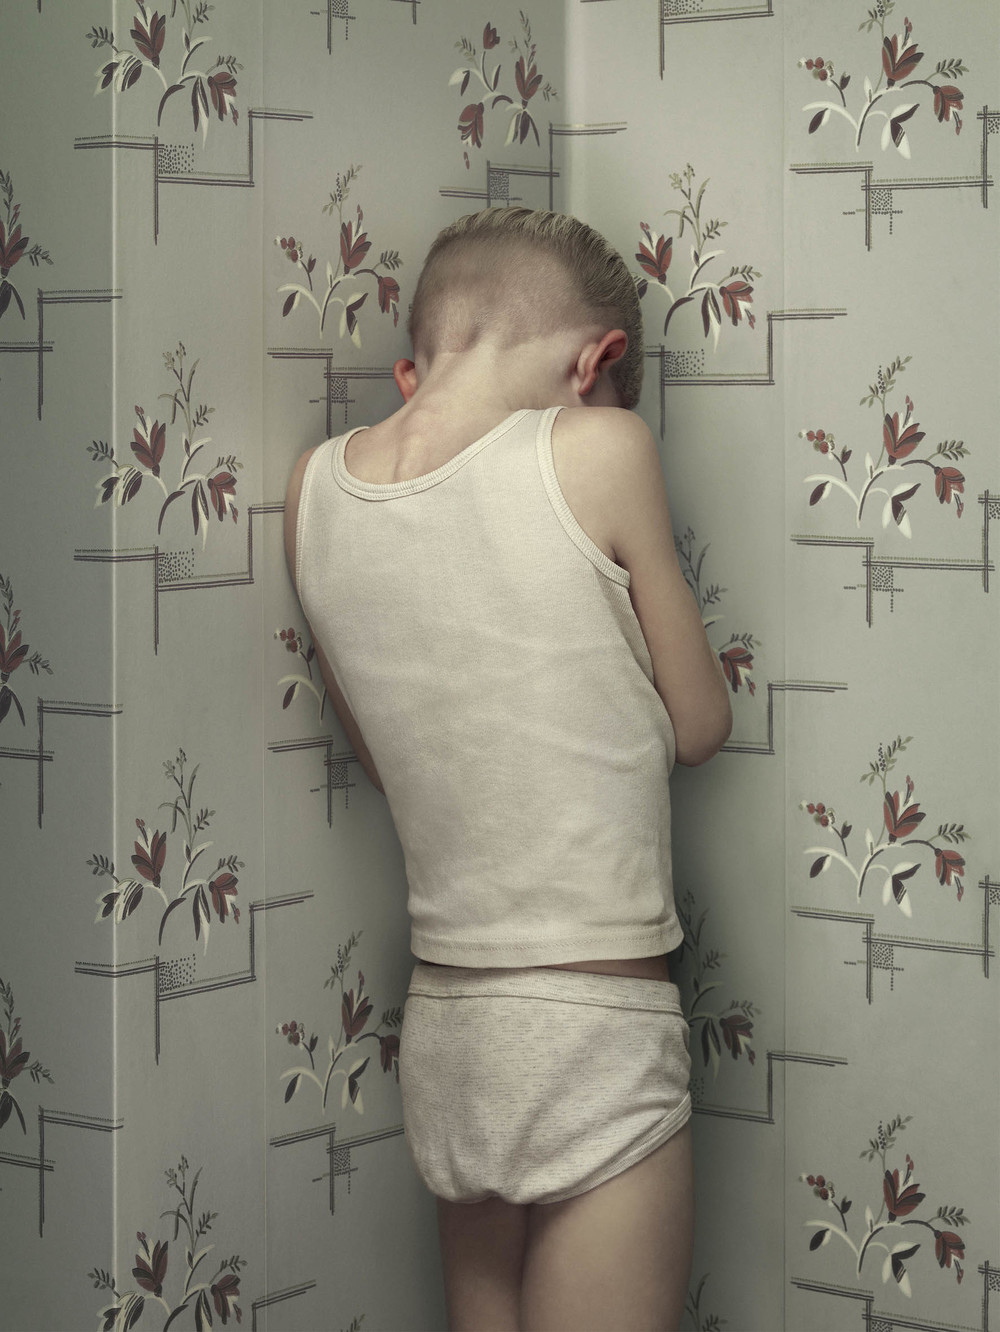 Erwin Olaf, Keyhole 7, 2011 - Courtesy the artist and Rabouan Moussion Gallery Paris